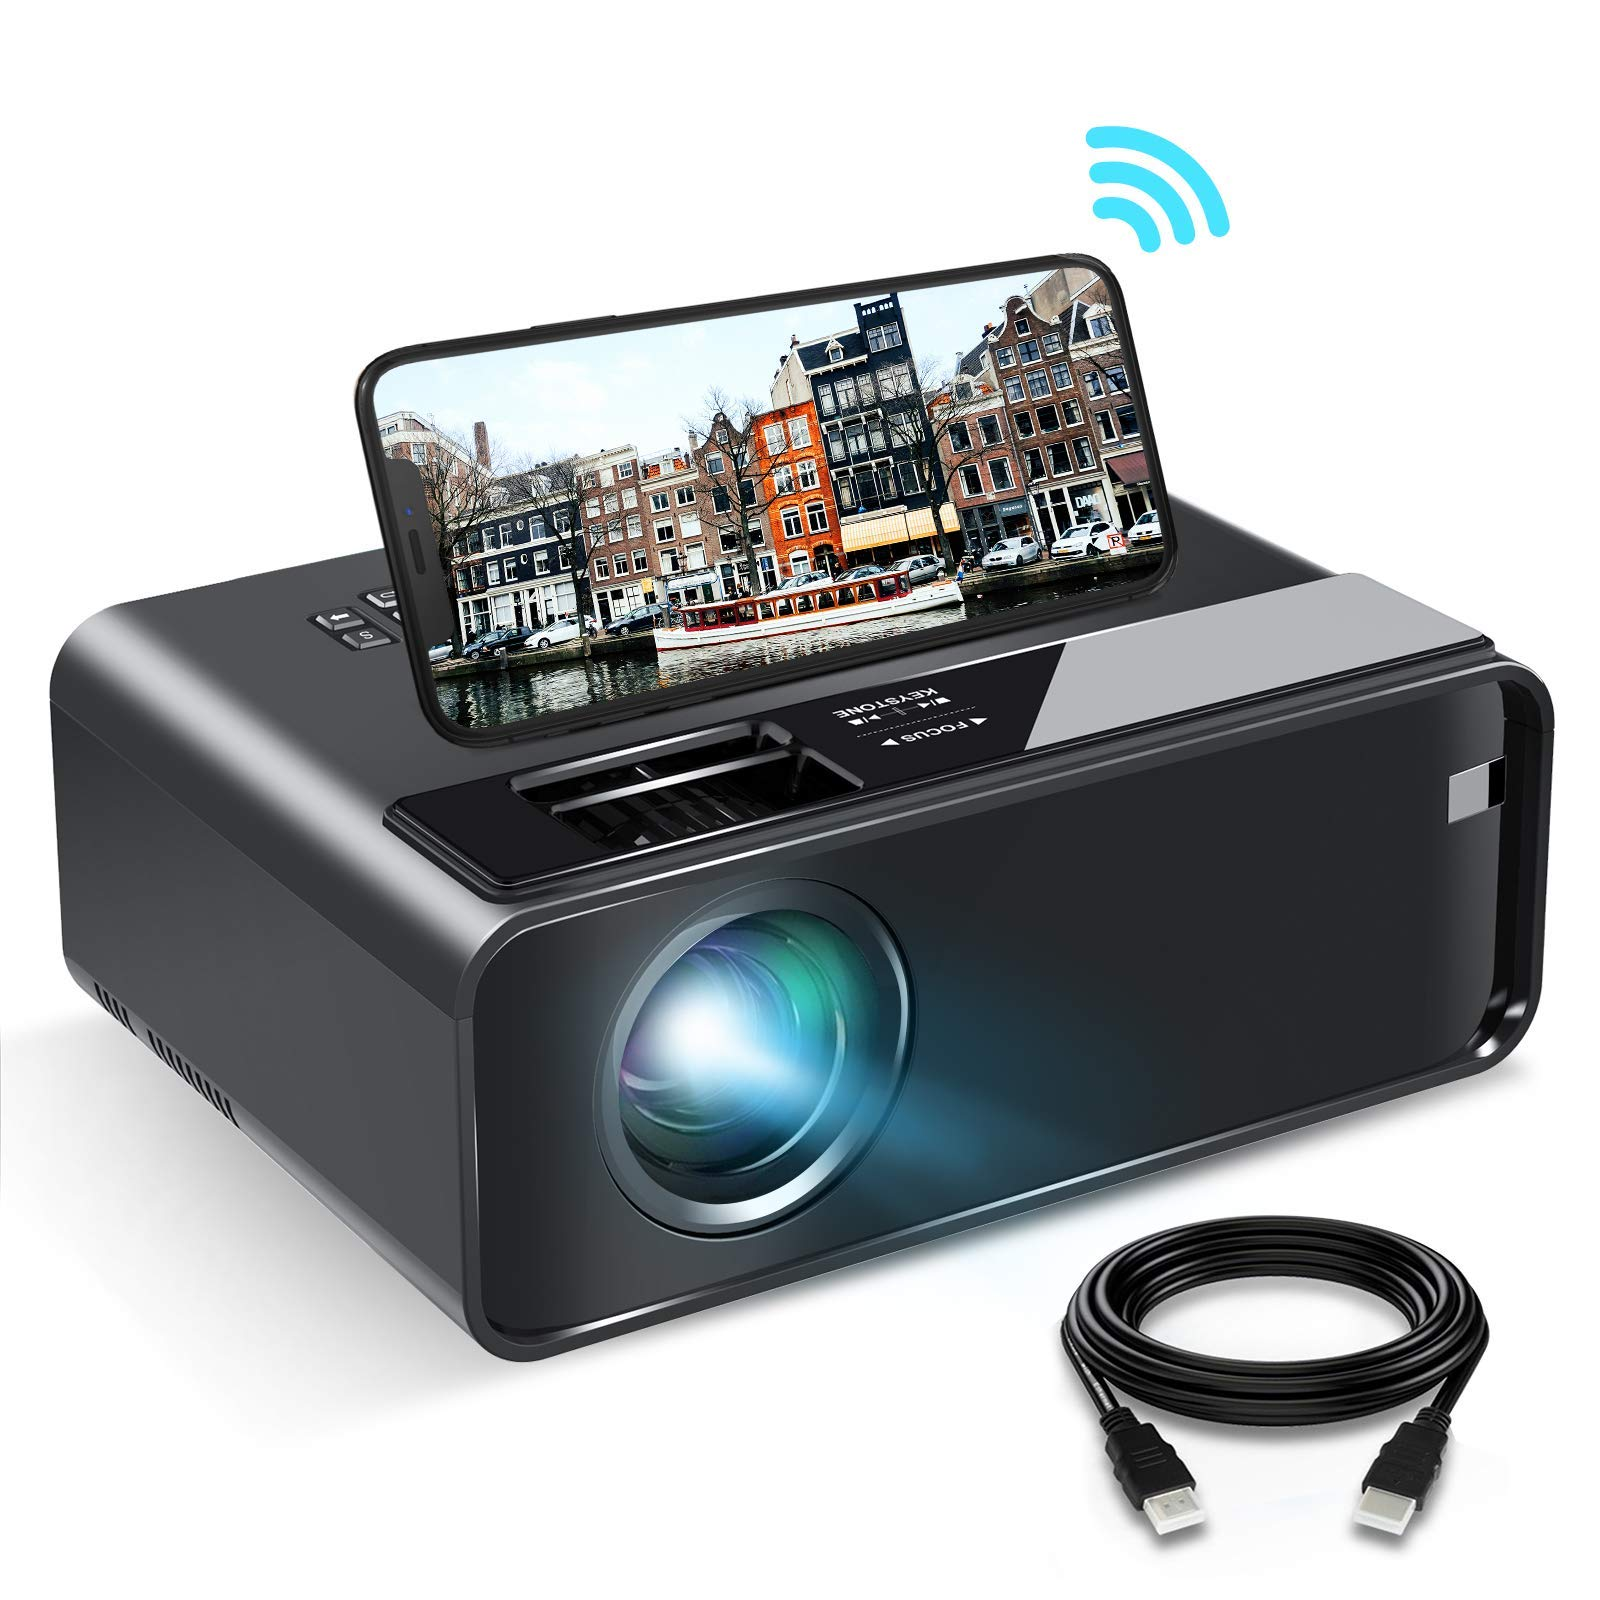 """WiFi Projector, ELEPHAS 2020 WiFi Mini Projector with Synchronize Smartphone Screen, 1080P HD Portable Projector with 6000 Lux and 200"""" Display, Compatible with Android/iOS (Black)"""